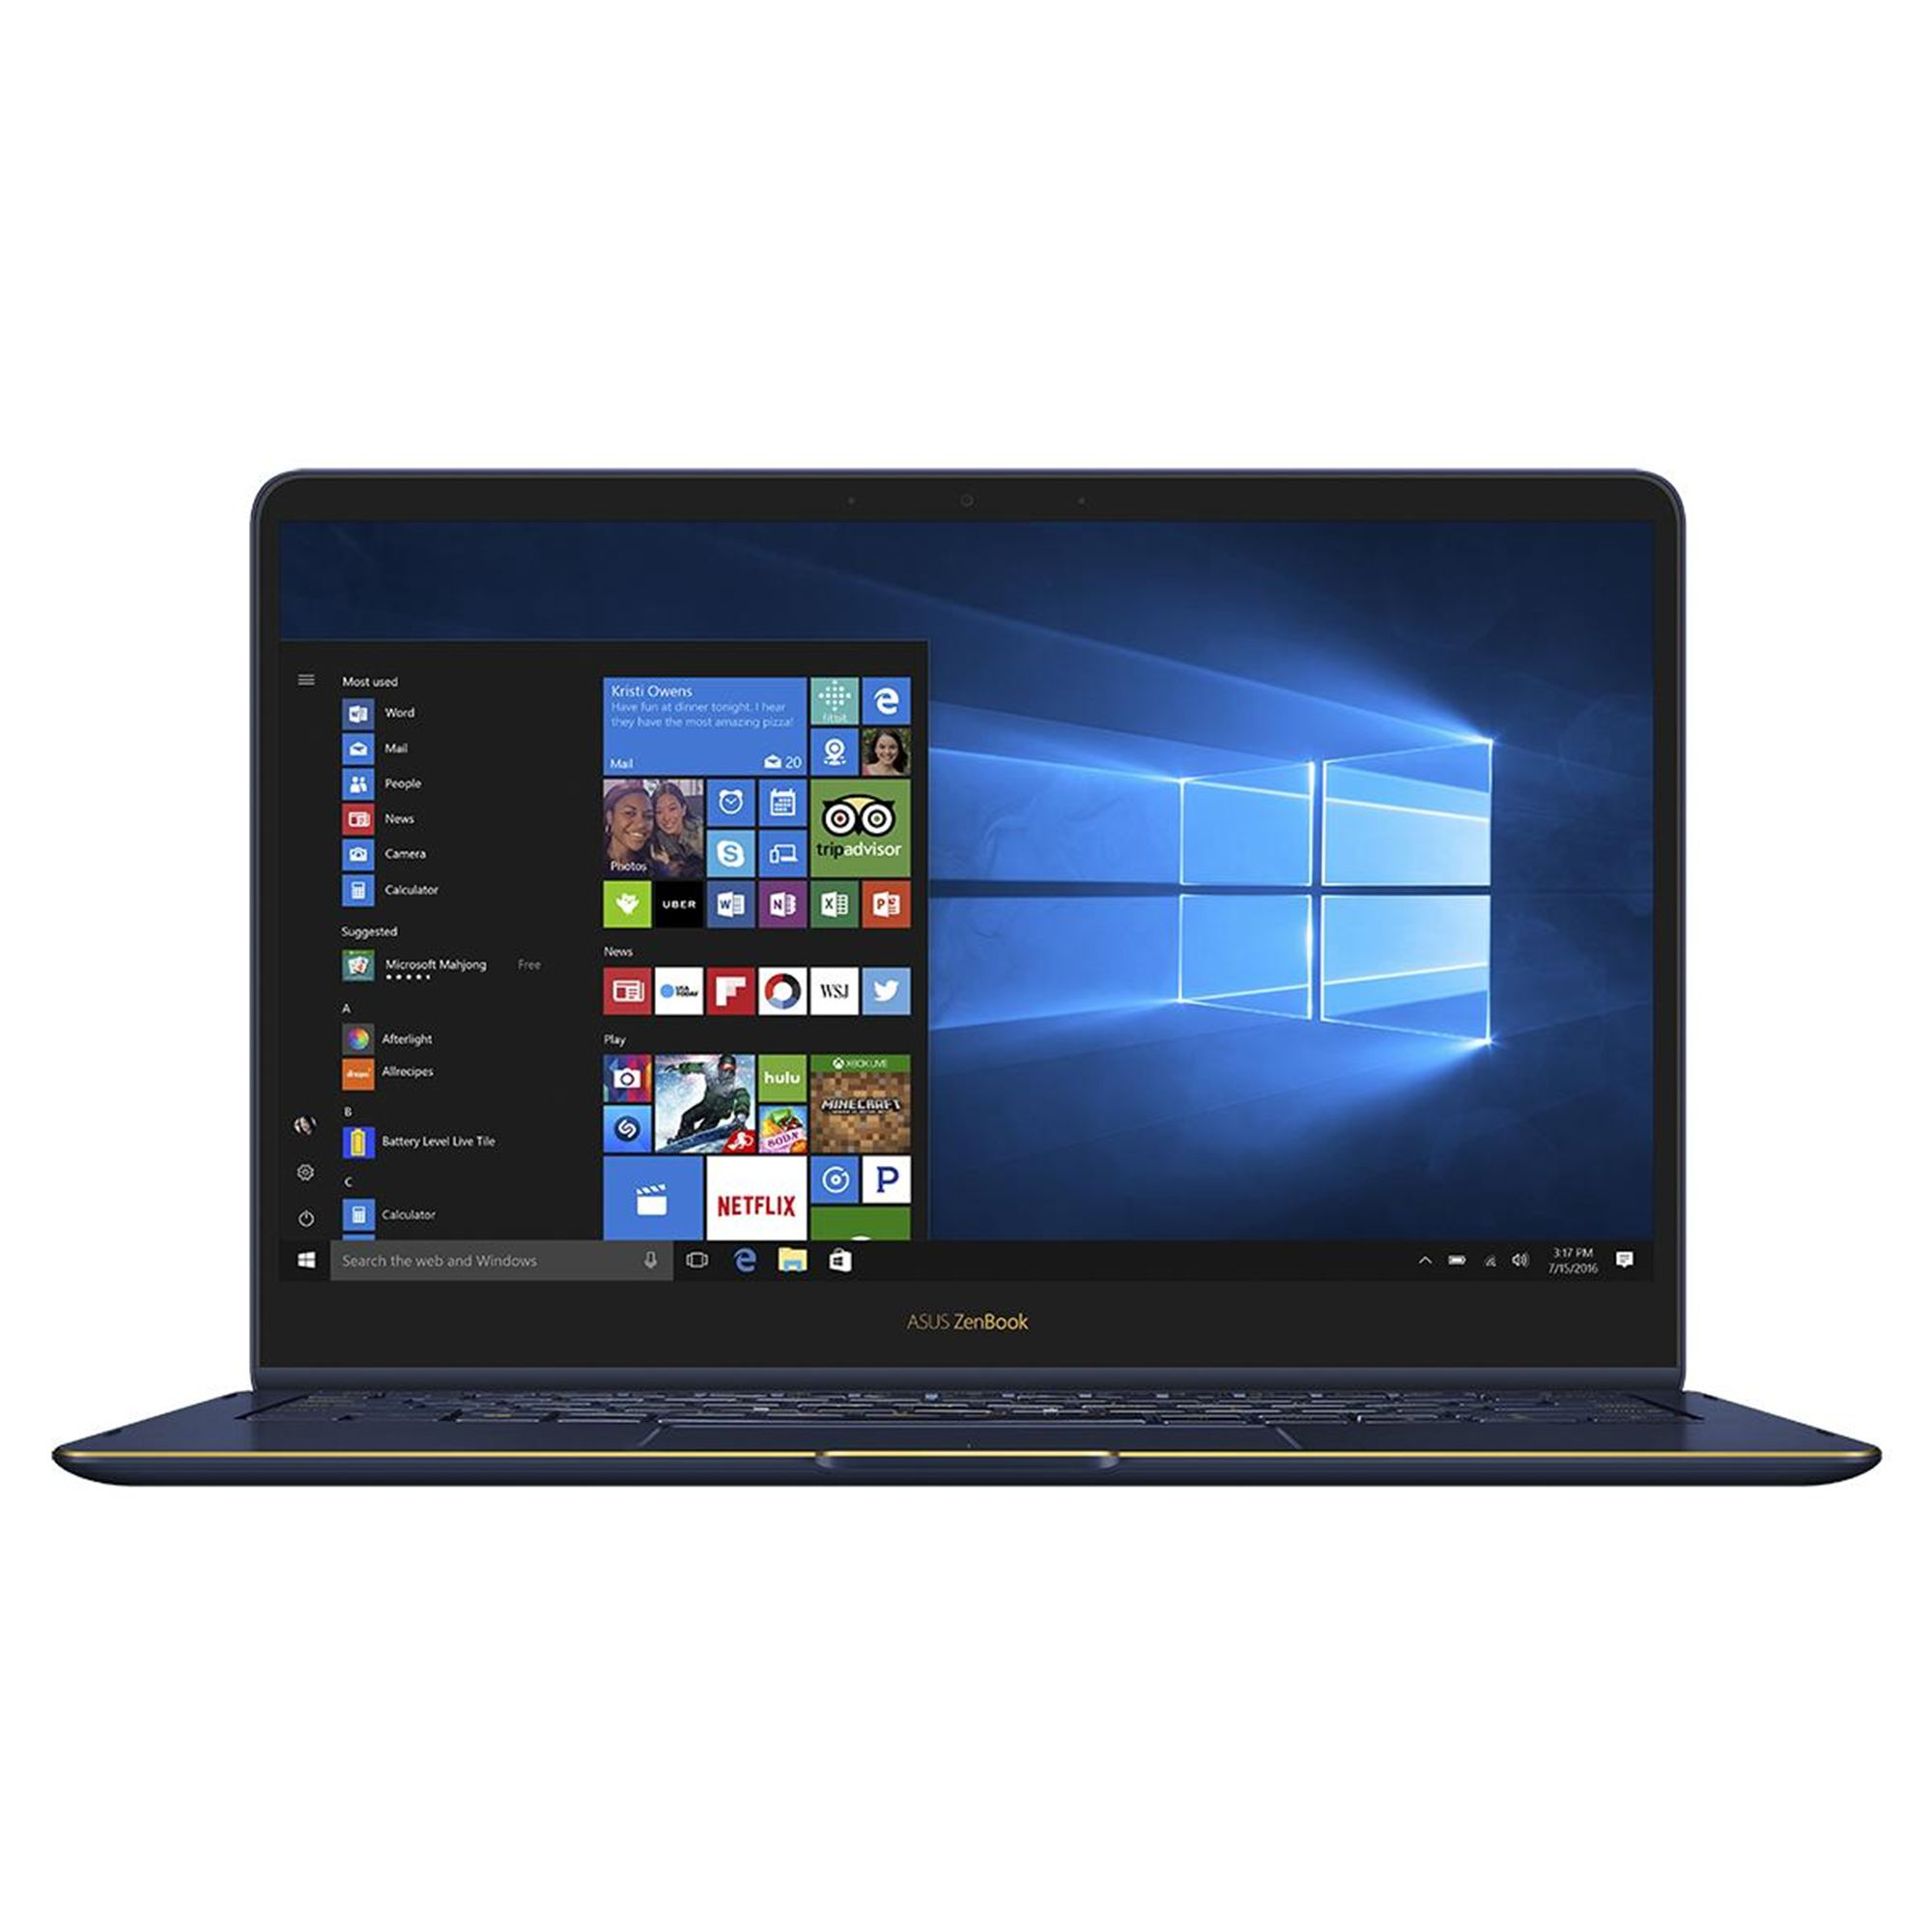 Ultrabook Asus ZenBook Flip S UX370UA 13.3 Full HD Touch Intel Core i7-8550U RAM 16GB SSD 256GB Windows 10 Pro Albastru